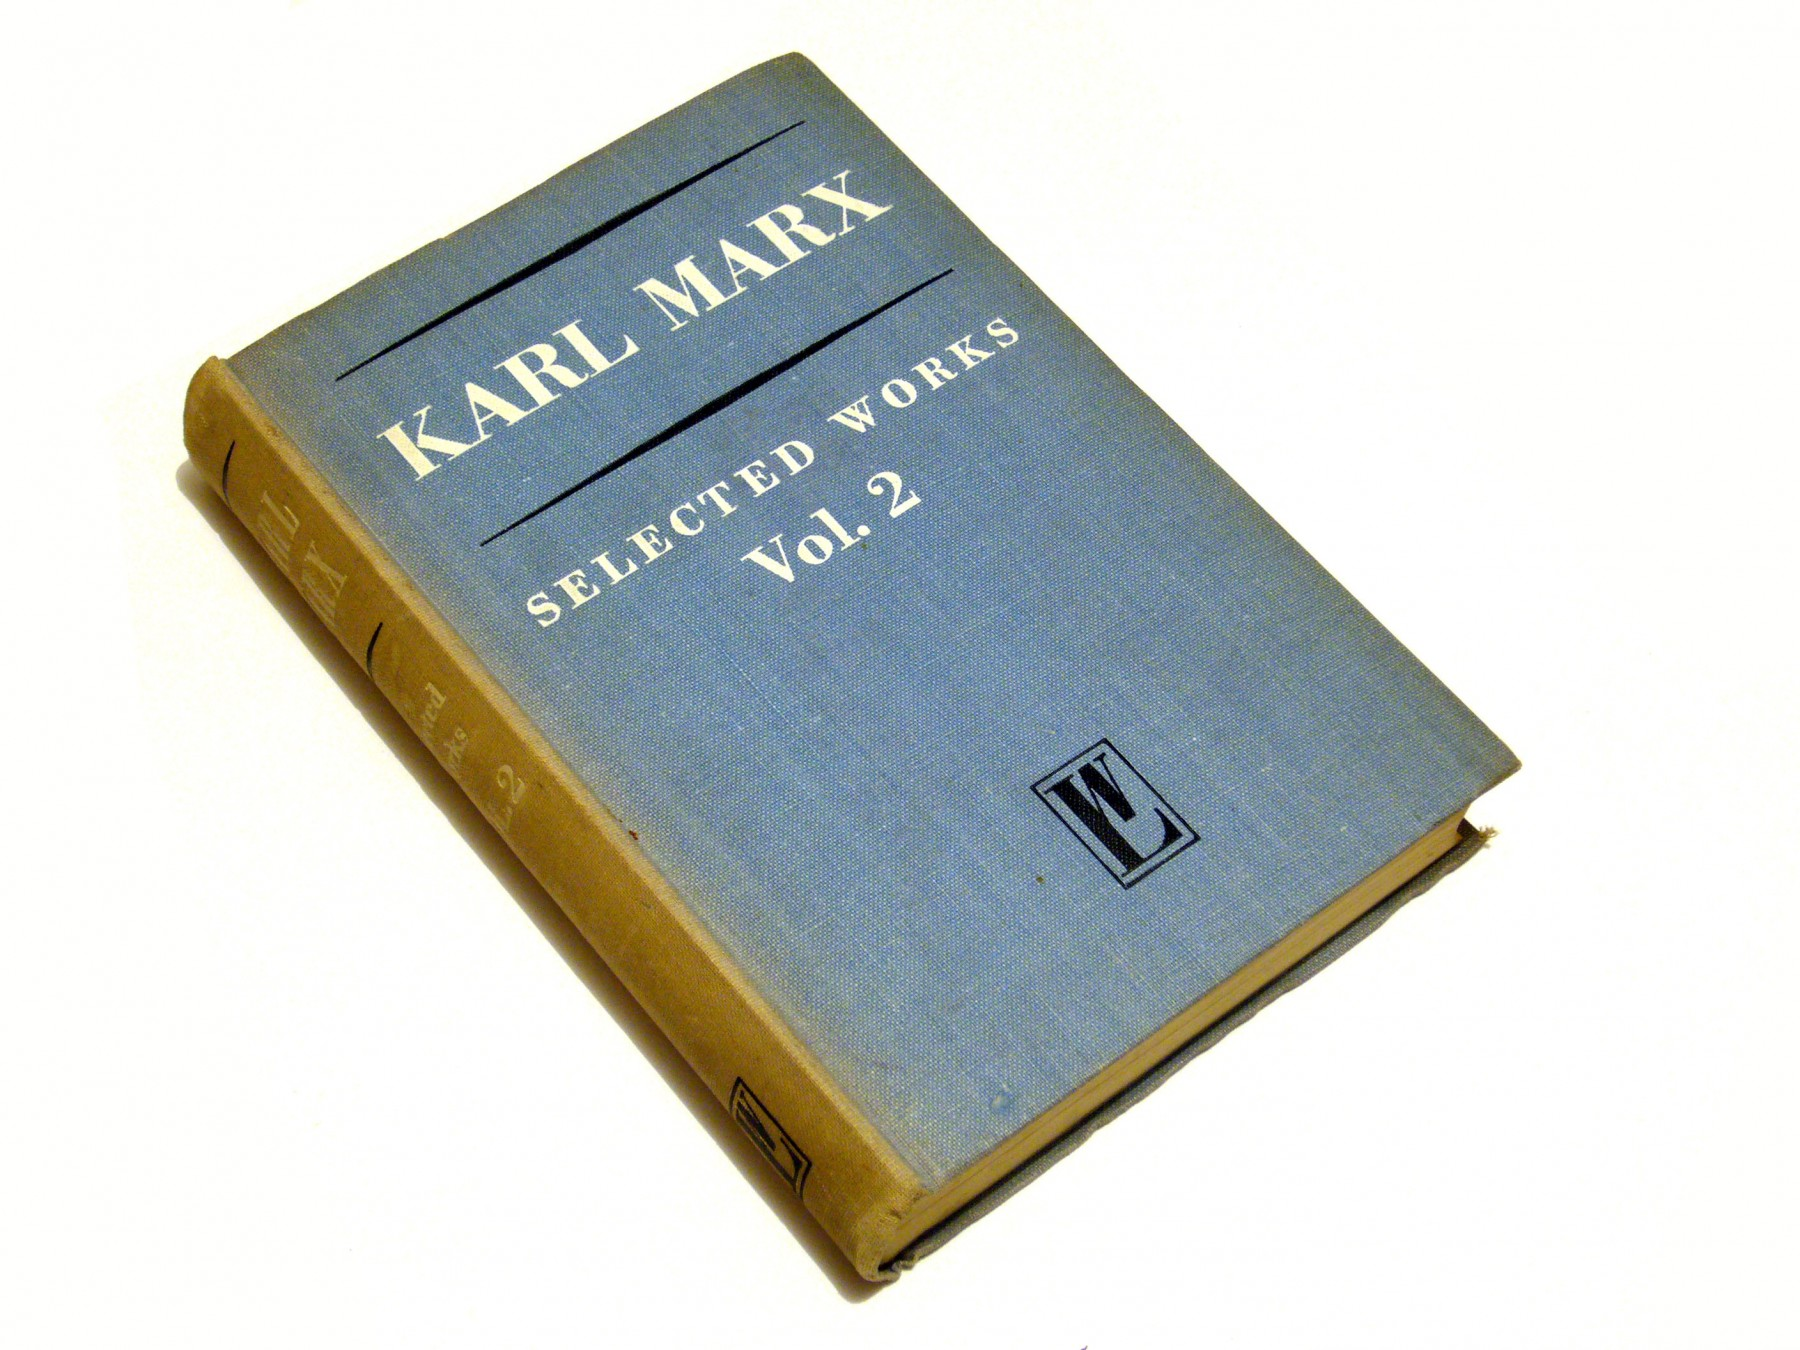 karl marx selected writings Find great deals for karl marx - selected writings by karl marx (2000, paperback, revised) shop with confidence on ebay.